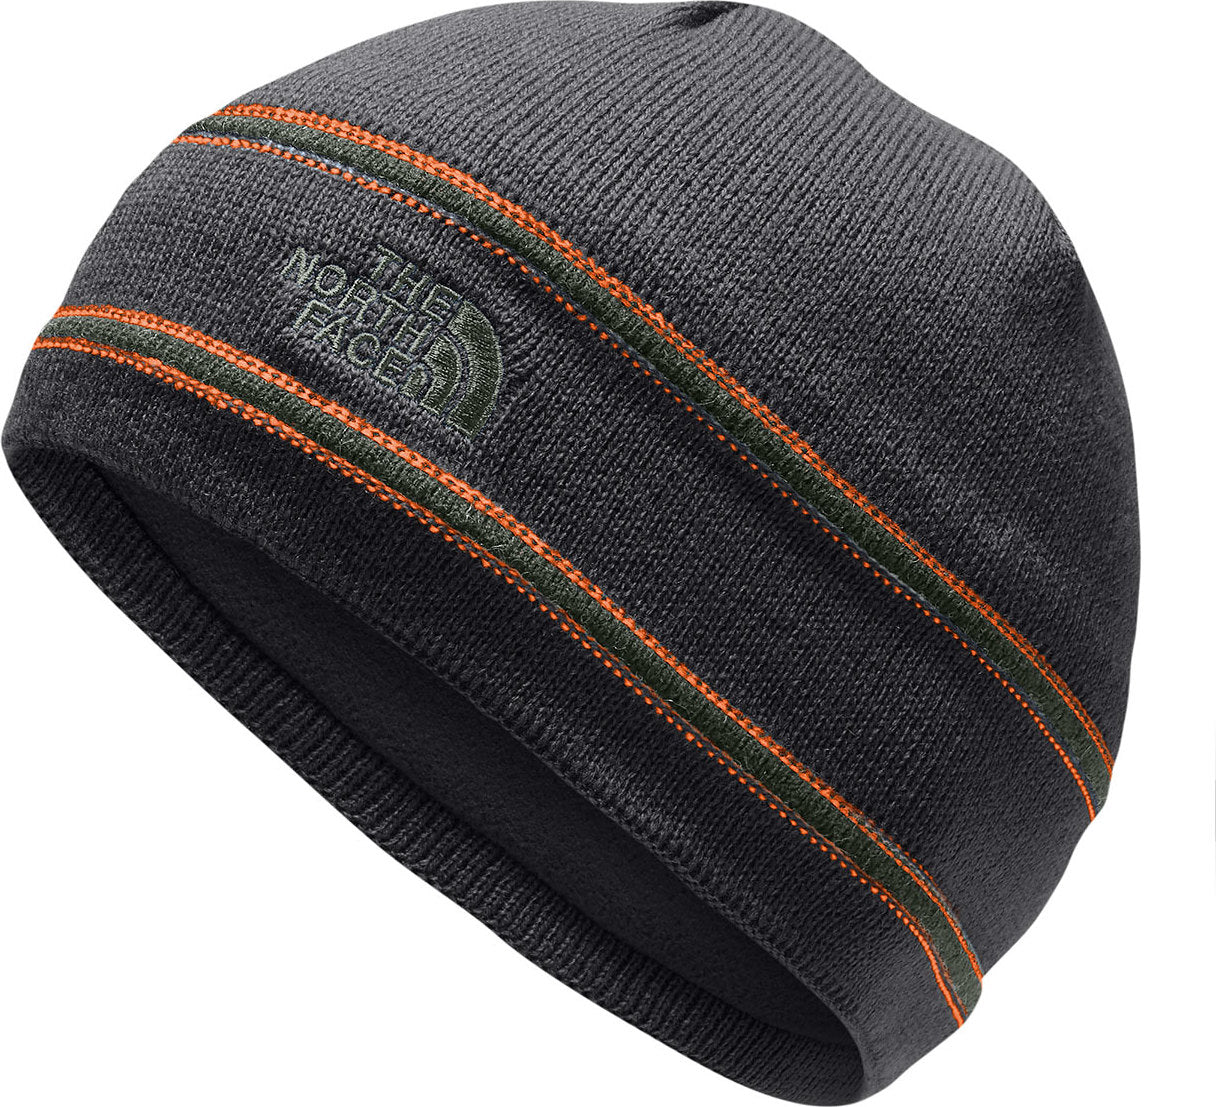 4ad5eeee363 The North Face Youth Tnf Logo Beanie